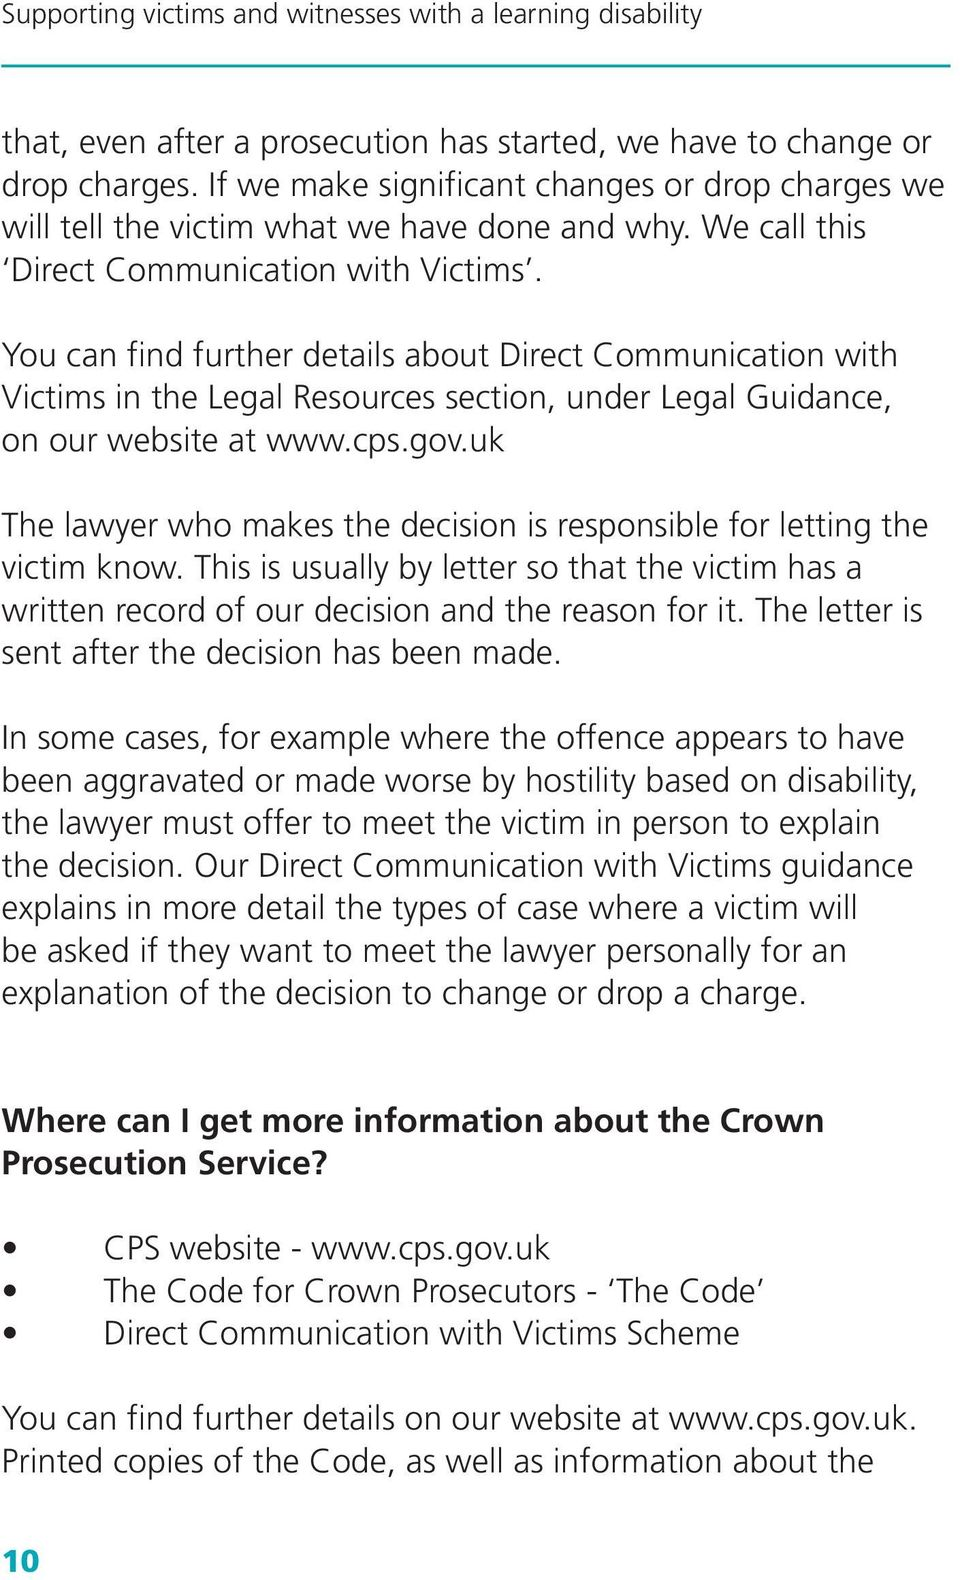 gov.uk The lawyer who makes the decision is responsible for letting the victim know. This is usually by letter so that the victim has a written record of our decision and the reason for it.